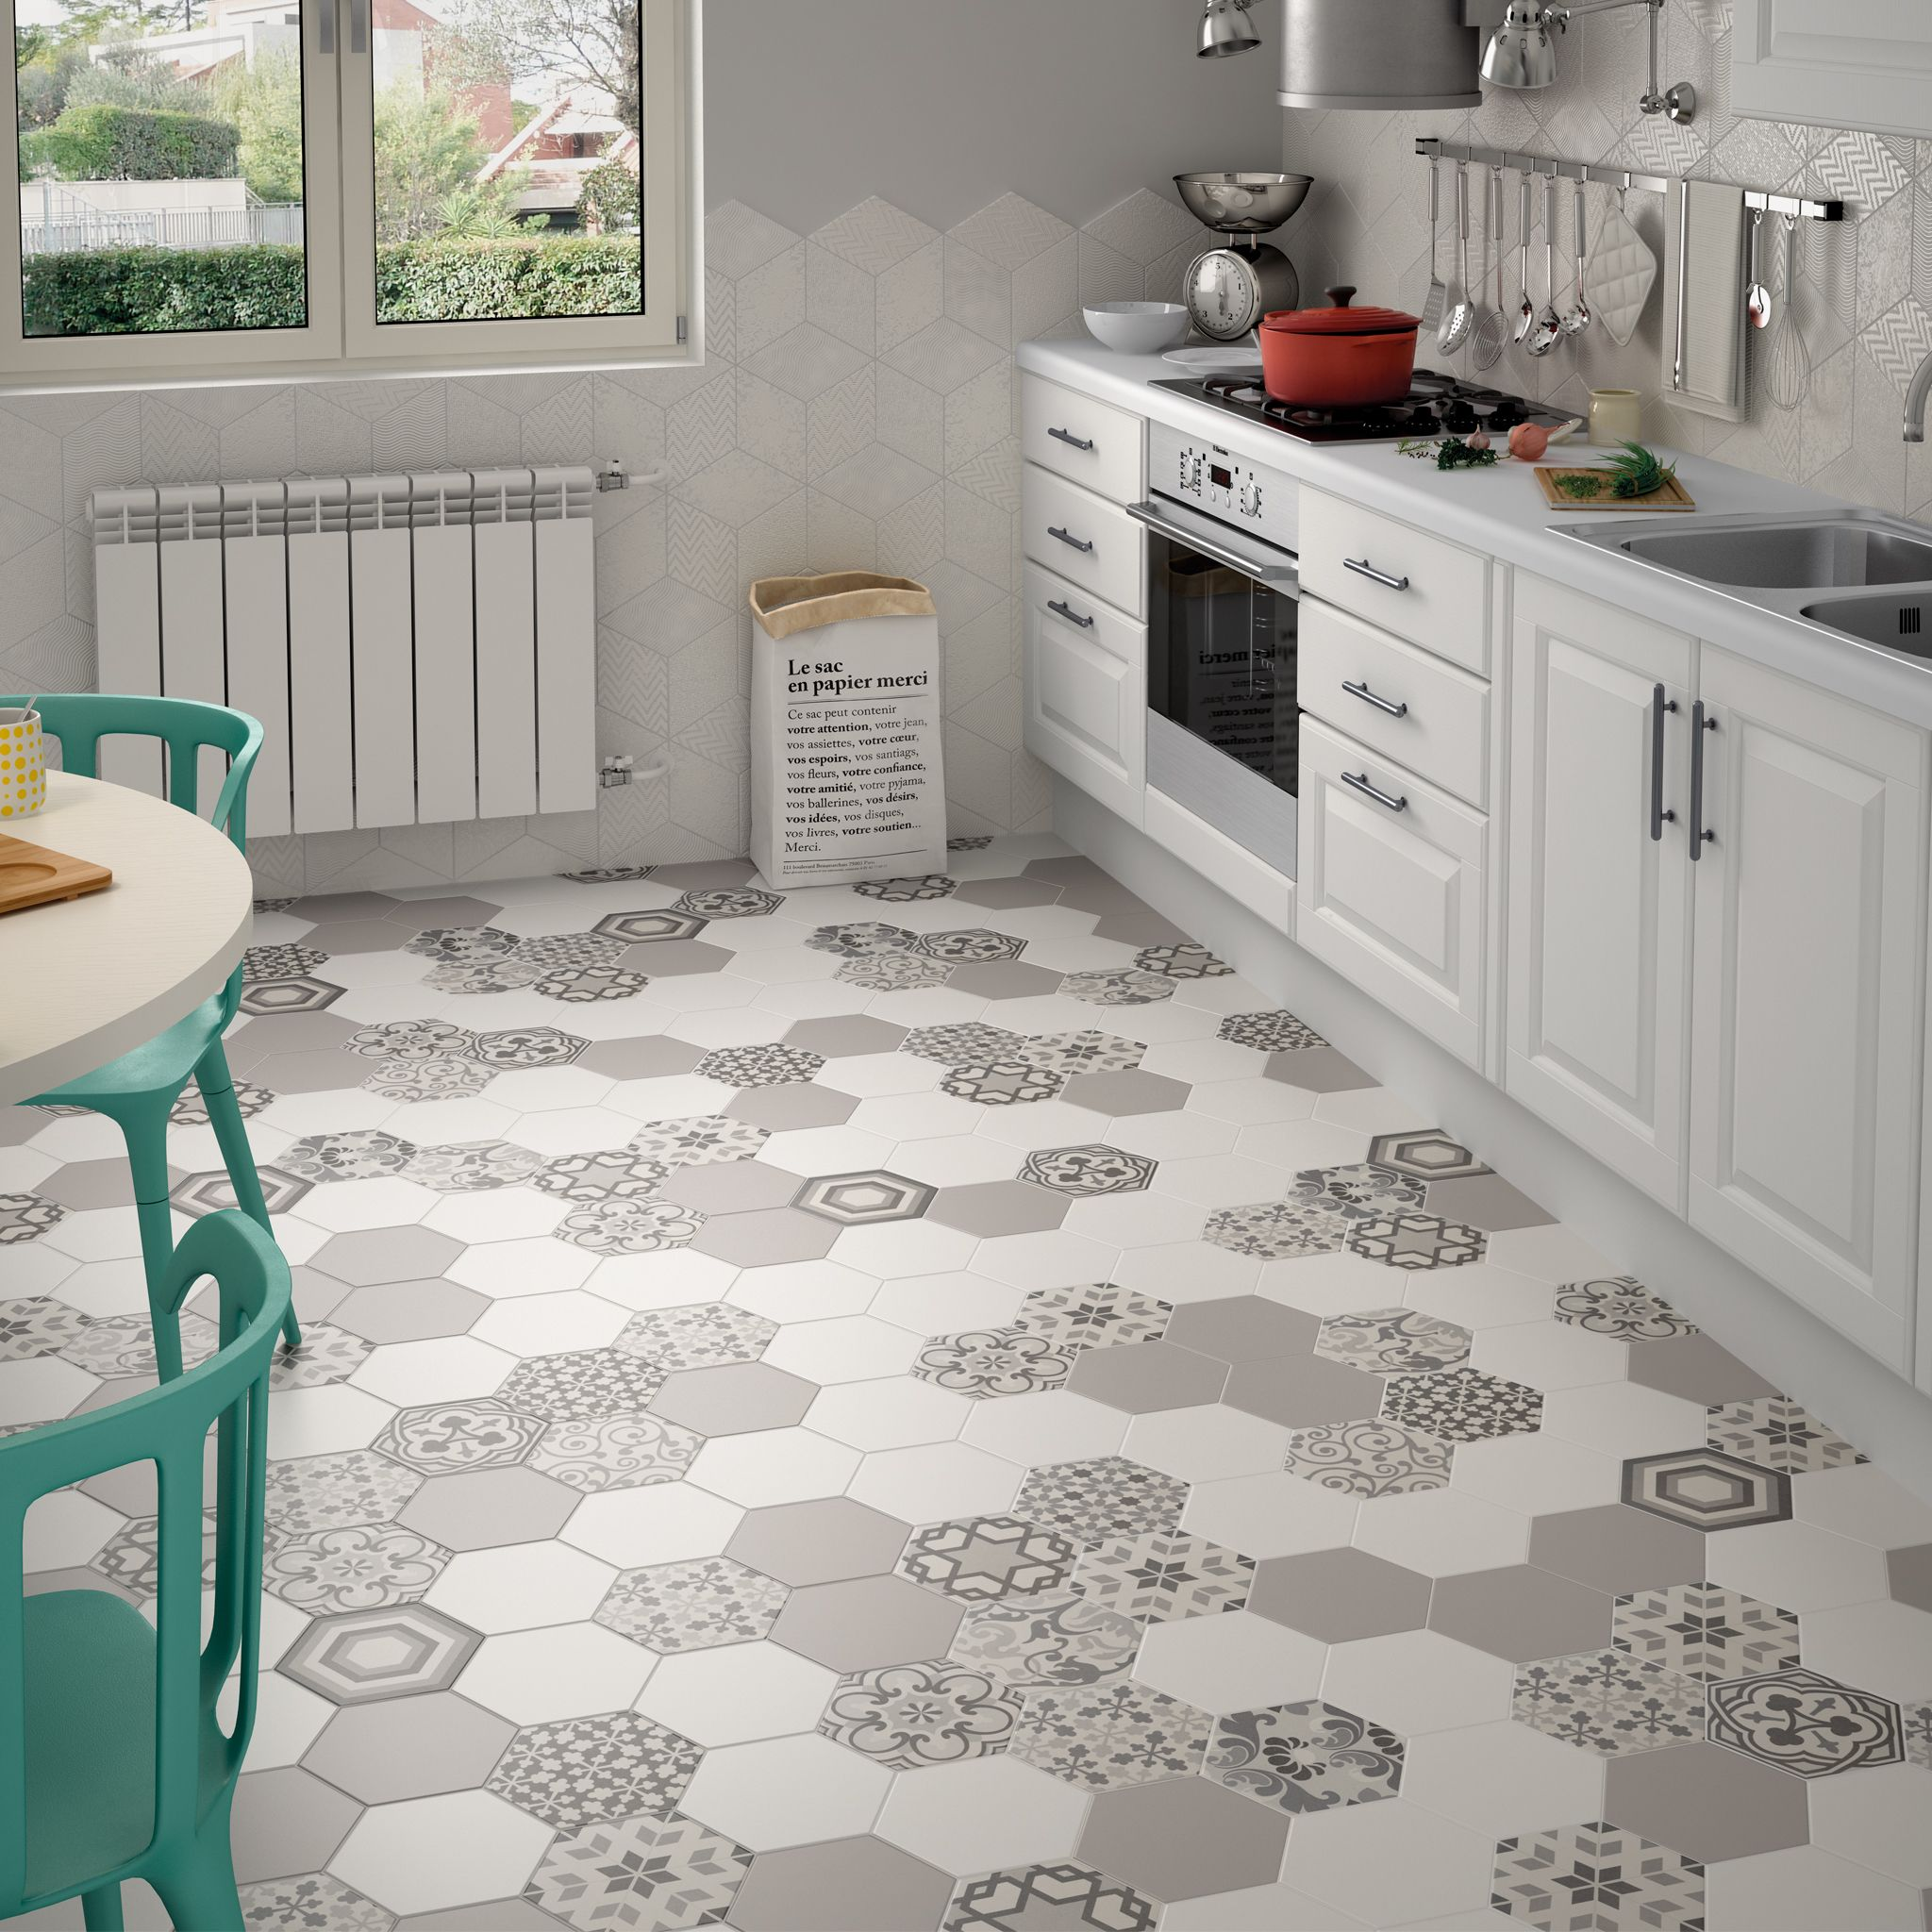 Mosaic Tile Kitchen Floor Hexagon Random Pattern Decorative Tiles In Black White Colours